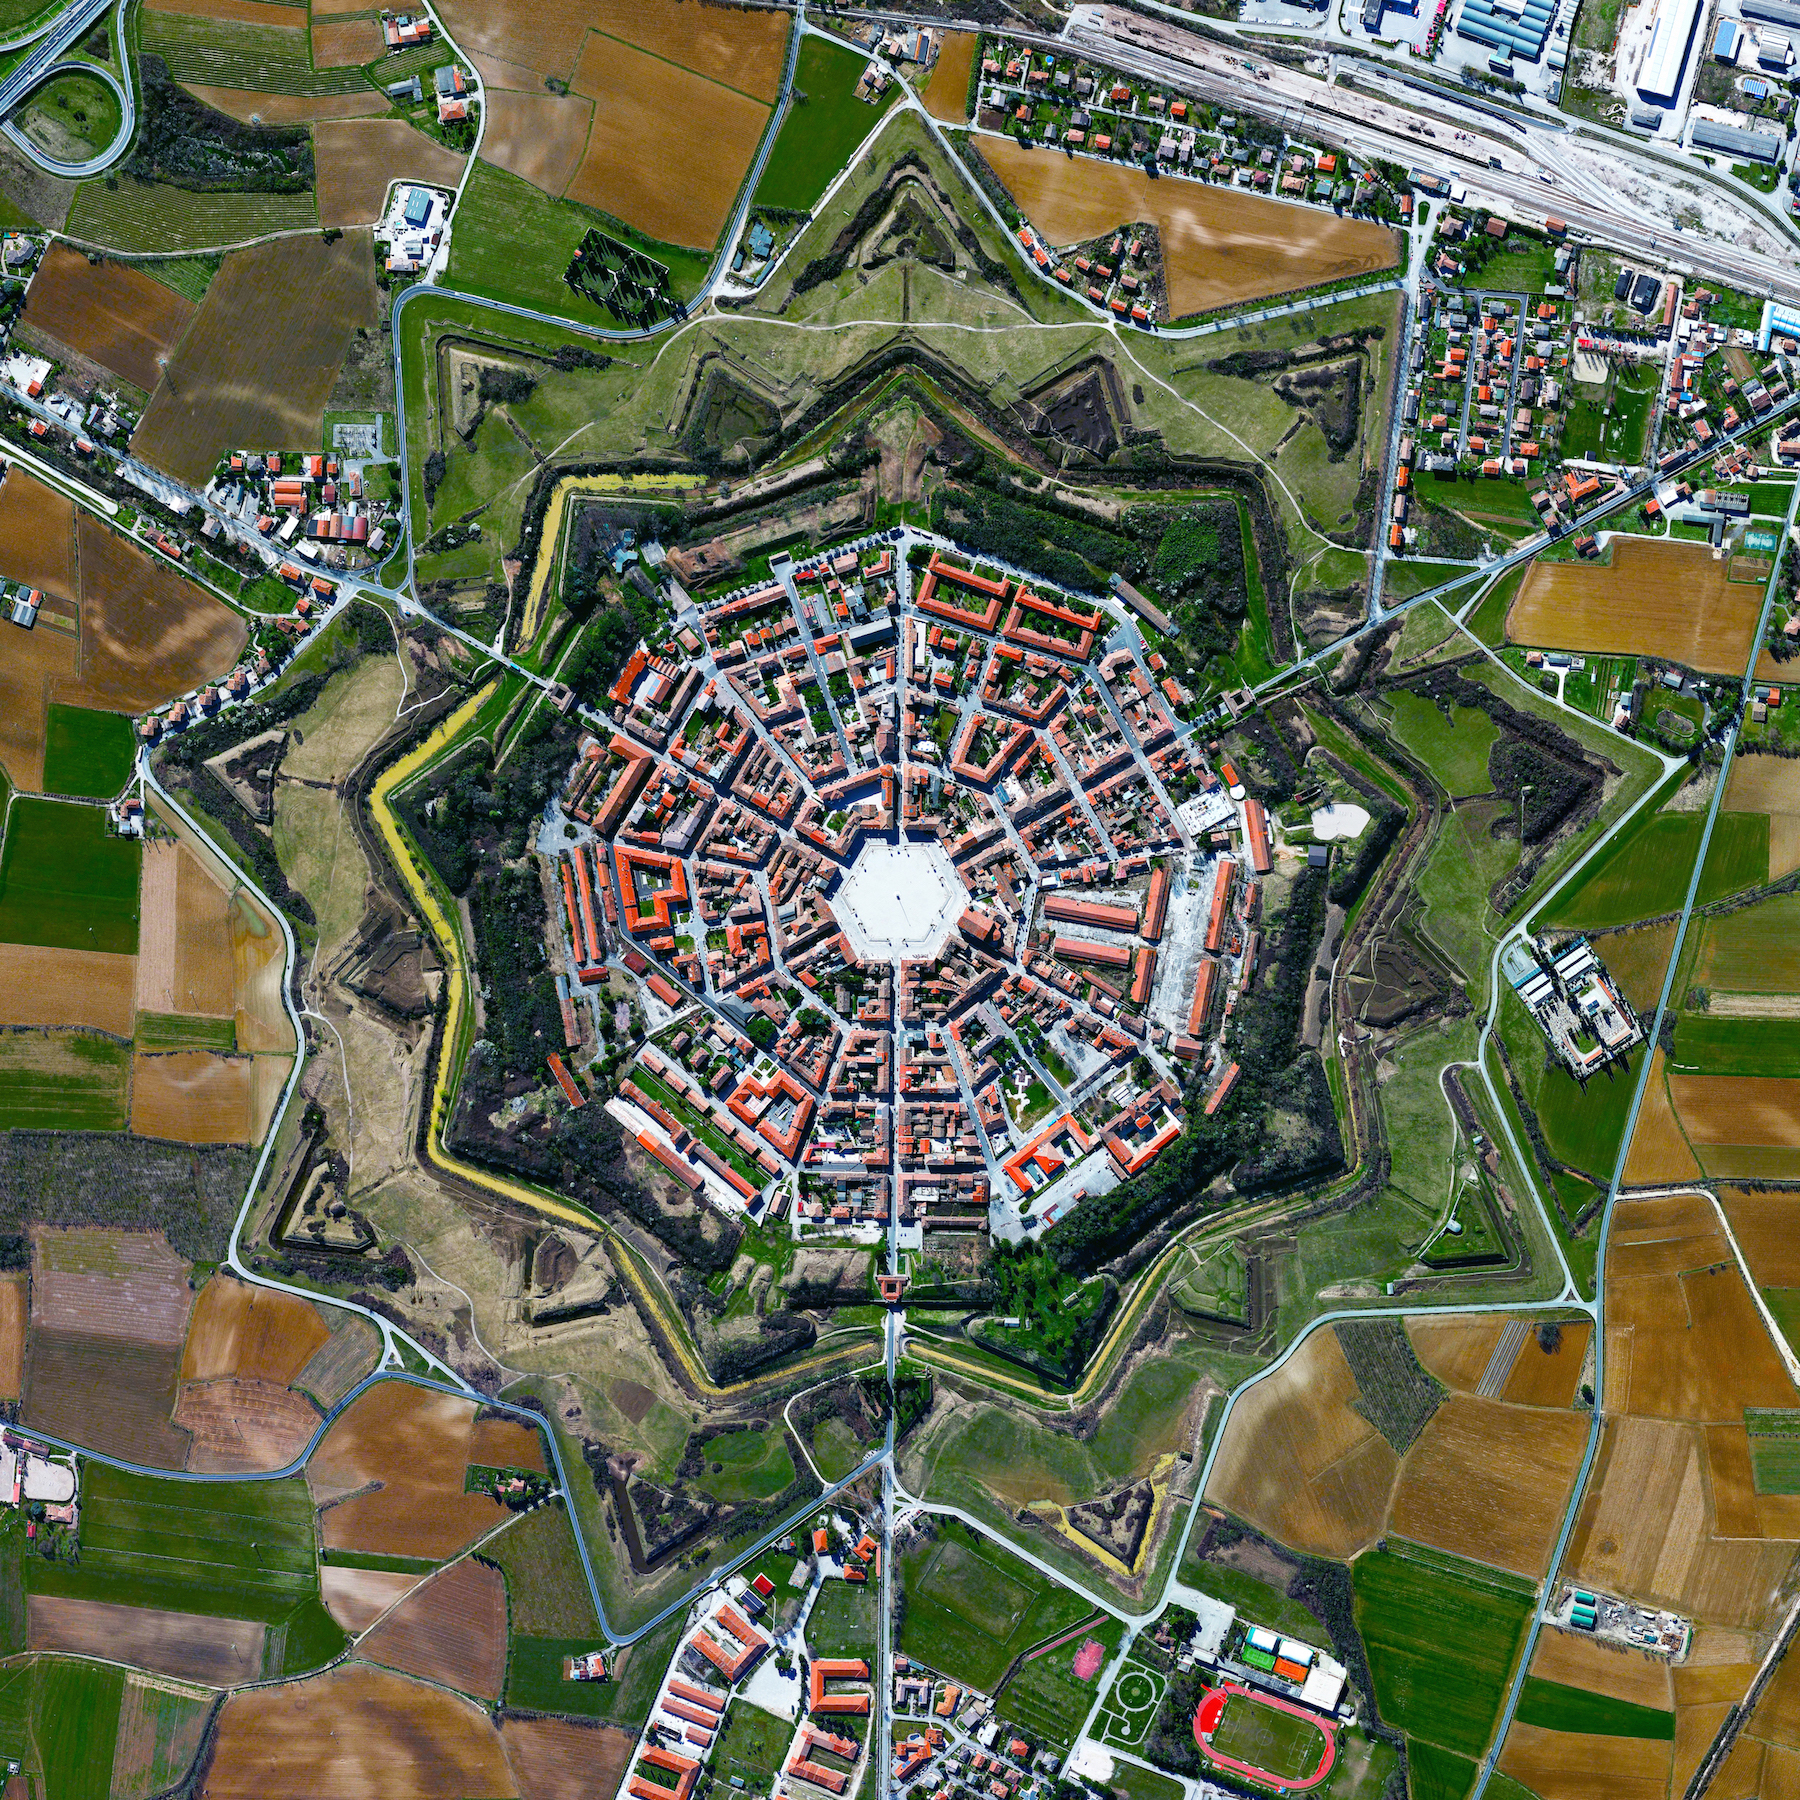 11/9/2015   Palmanova   Palamova, Italy  45.904892400°, 13.317671100°    The town of Palmanova, Italy is recognized by its concentric layout known as a star fort. The rationale for this construction was that an attack on any individual wall could be defended from the two adjacent star points by shooting the enemy from behind. The three rings that surround Palmanova were completed in 1593, 1690, and 1813.